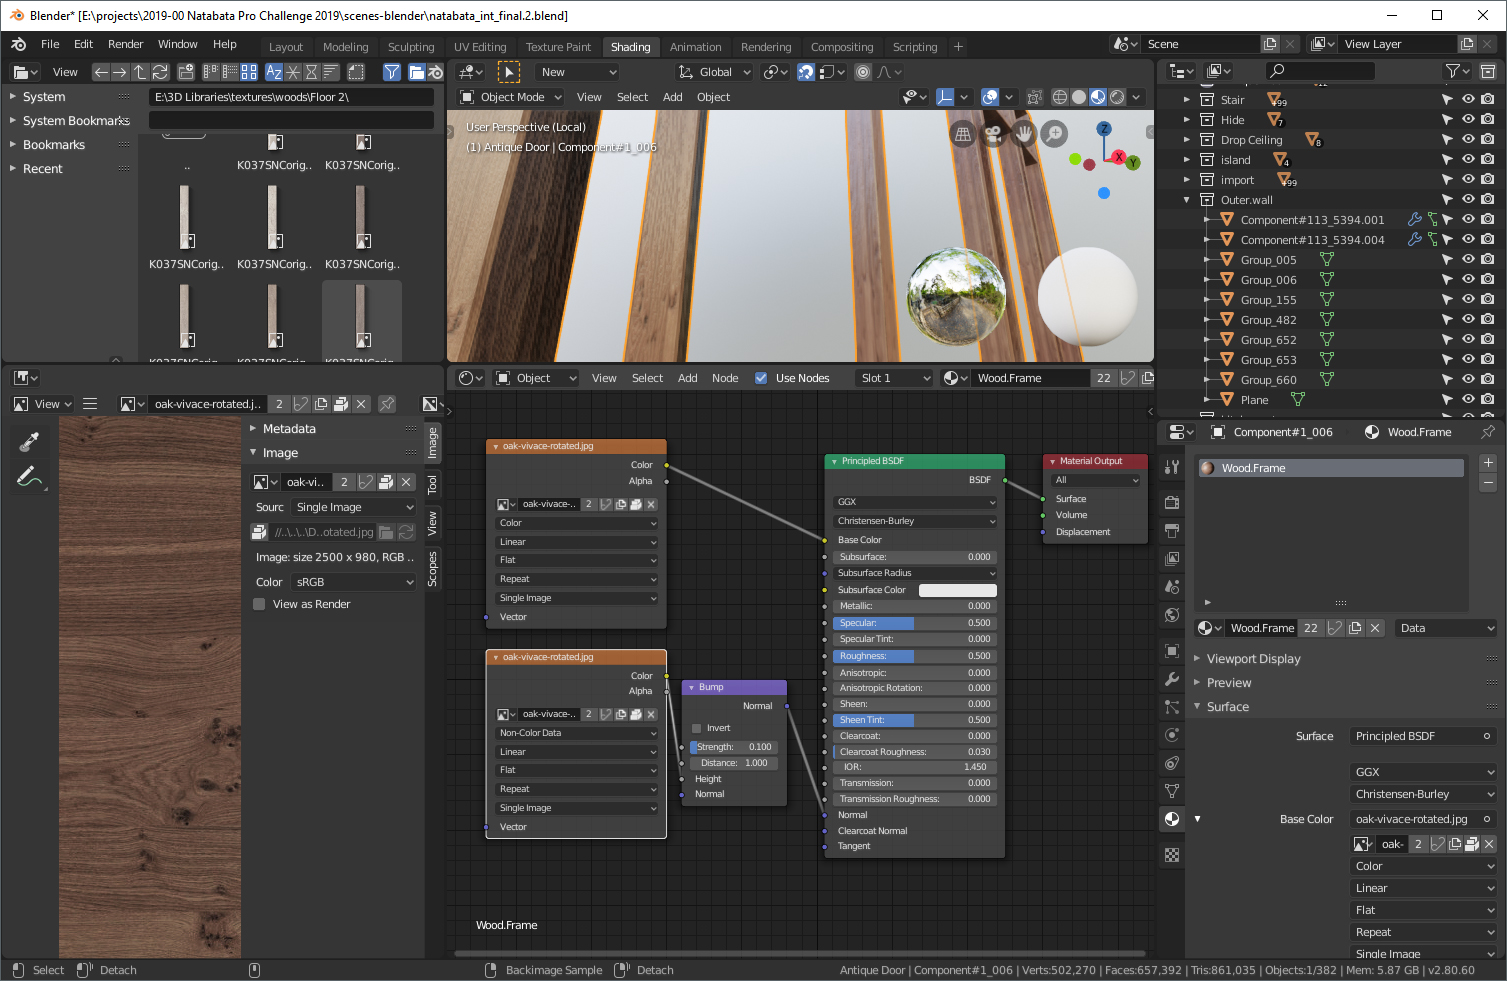 Behind the Scenes: Natabata Interior Project - BlenderNation